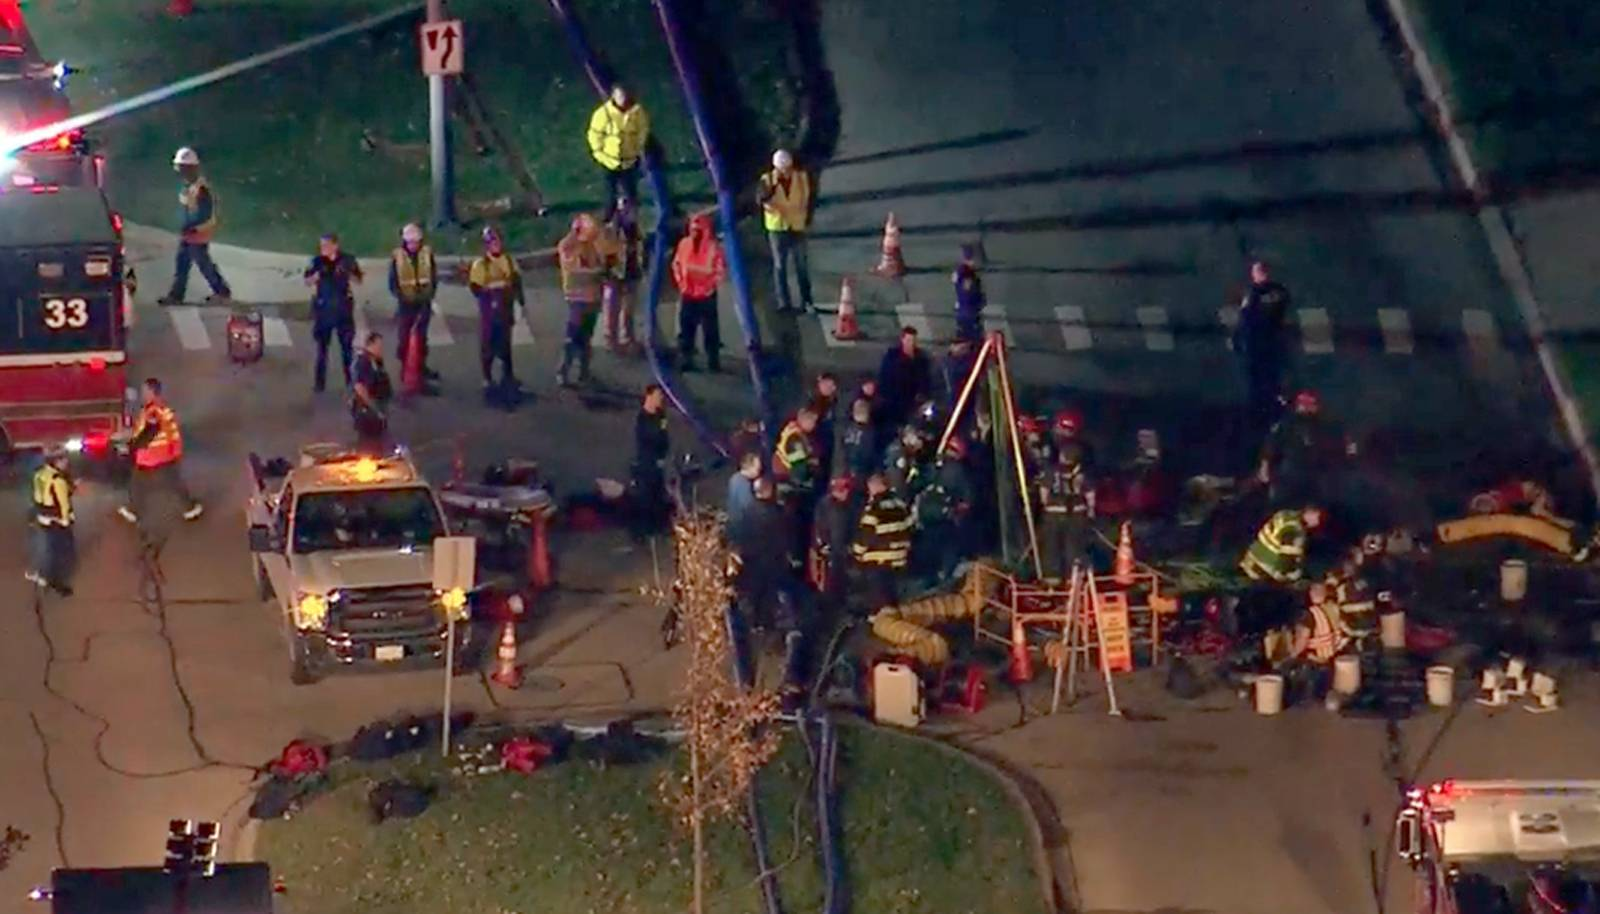 Rescue personnel work along Park Boulevard at the scene of a rescue in a manhole Wednesday evening in Streamwood.